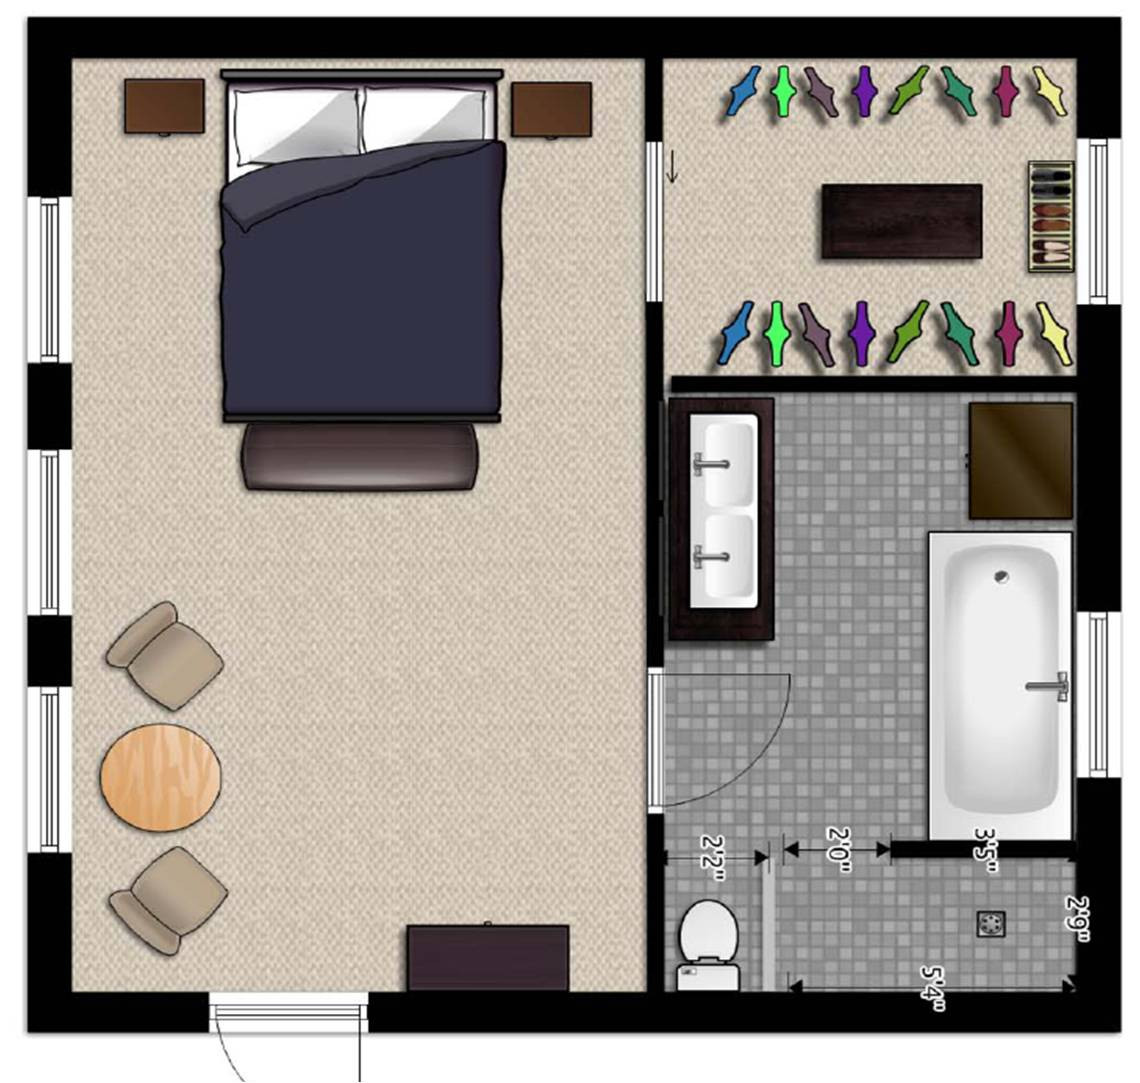 Best ideas about Bedroom Floor Plan . Save or Pin Tips on how to renovate build or a perfect home Part Now.